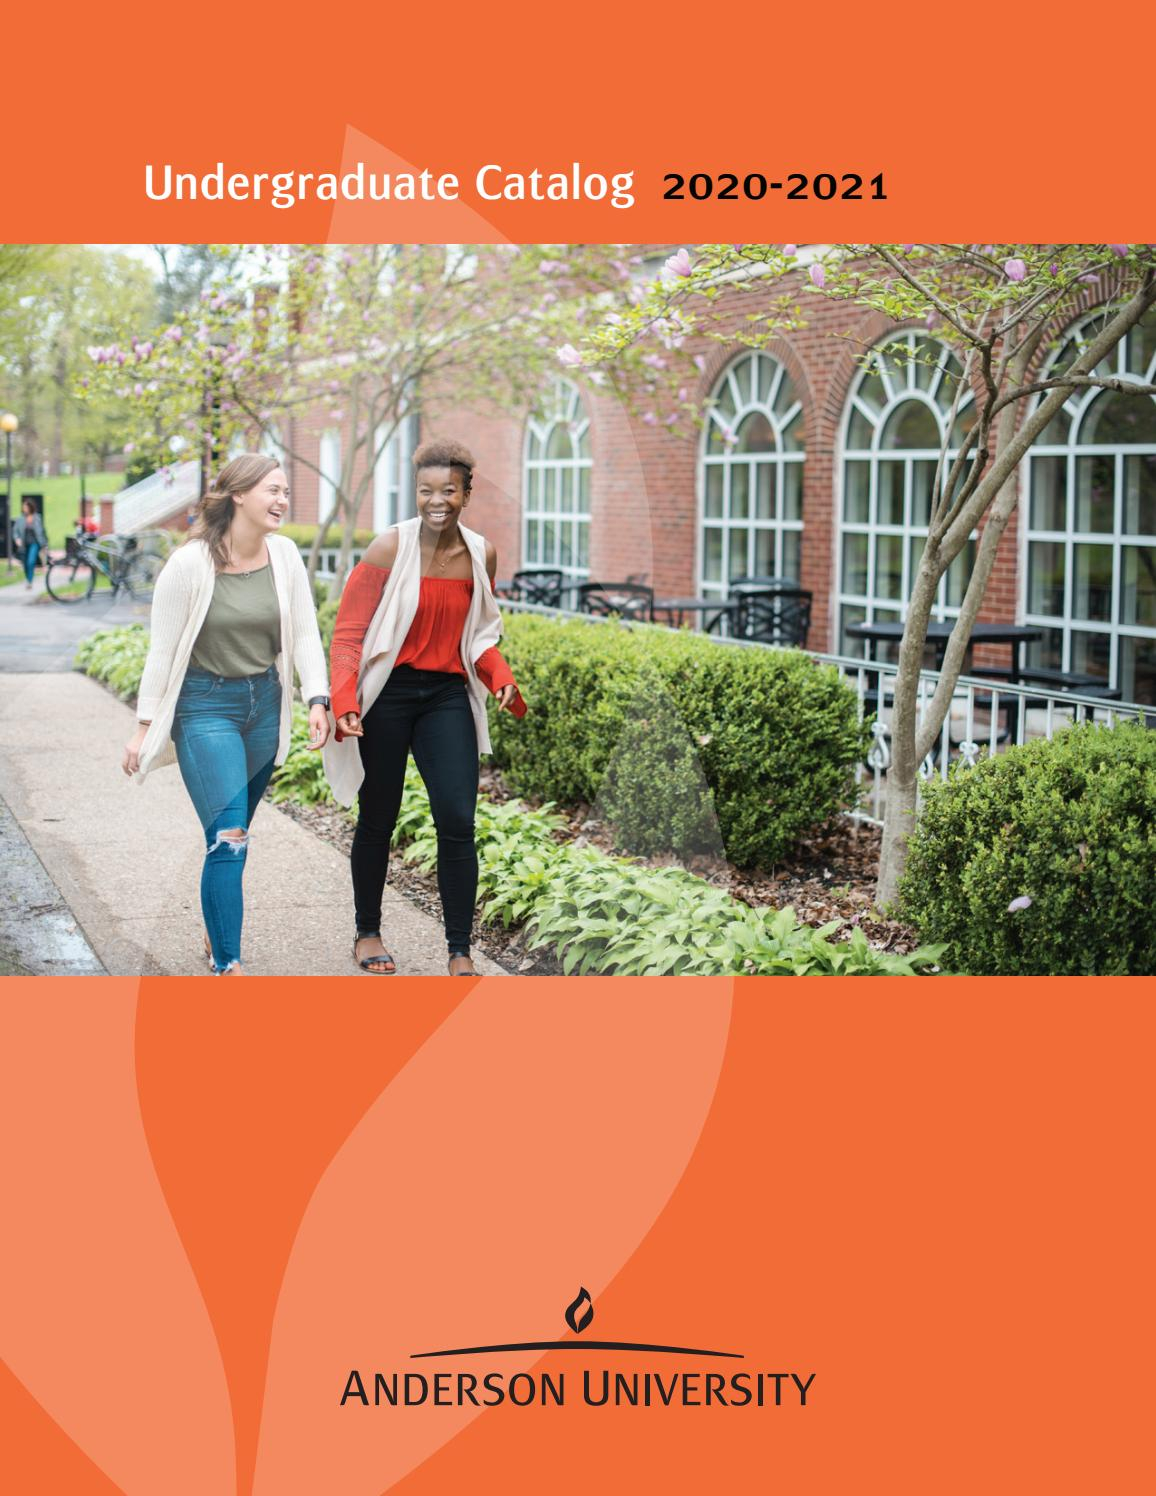 Anderson University Undergraduate Catalog 2020 21 With When Does The 2021 Semester End For Grand Haven High School